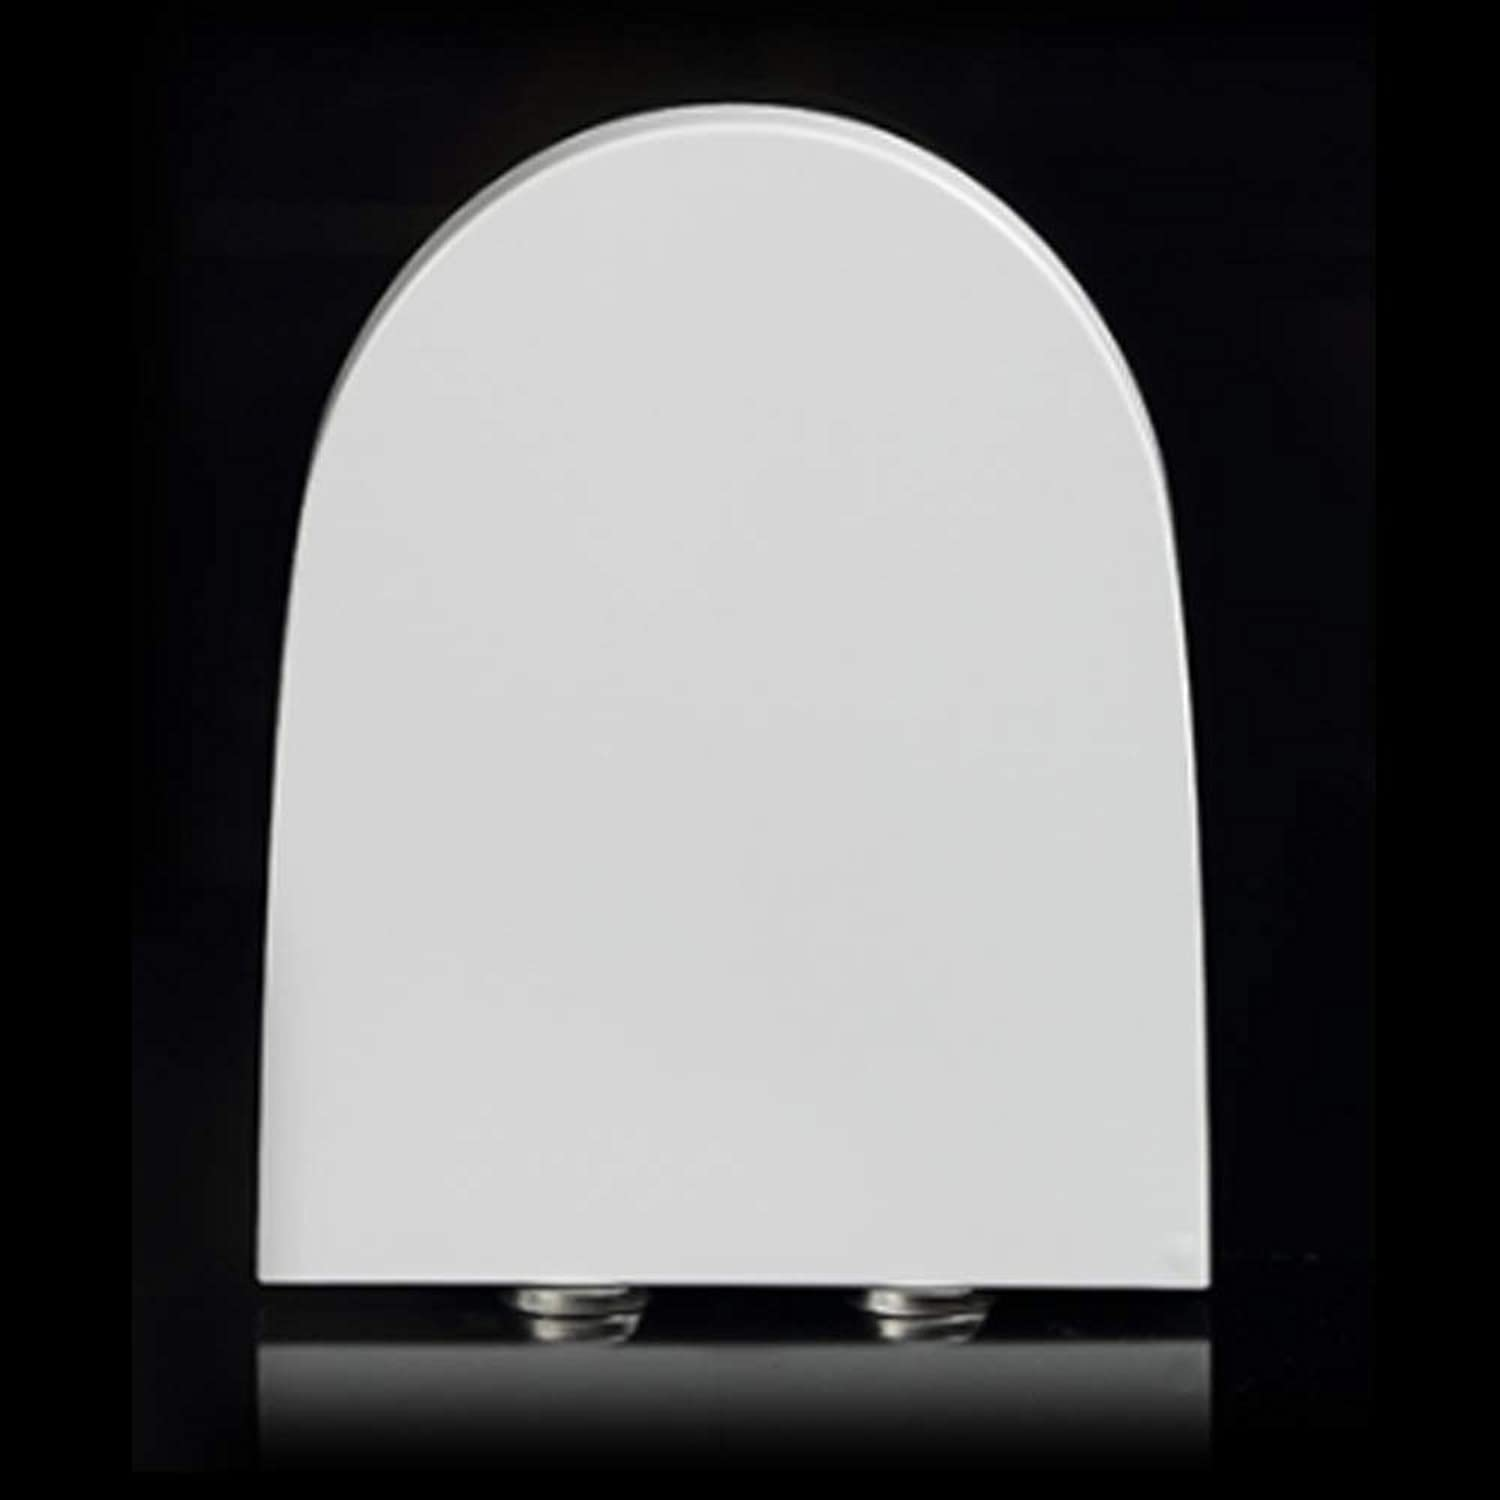 LBRVICTRY White V-Shaped With Soft Close Toilet Seat Antibacterial Easy To Clean,White-V